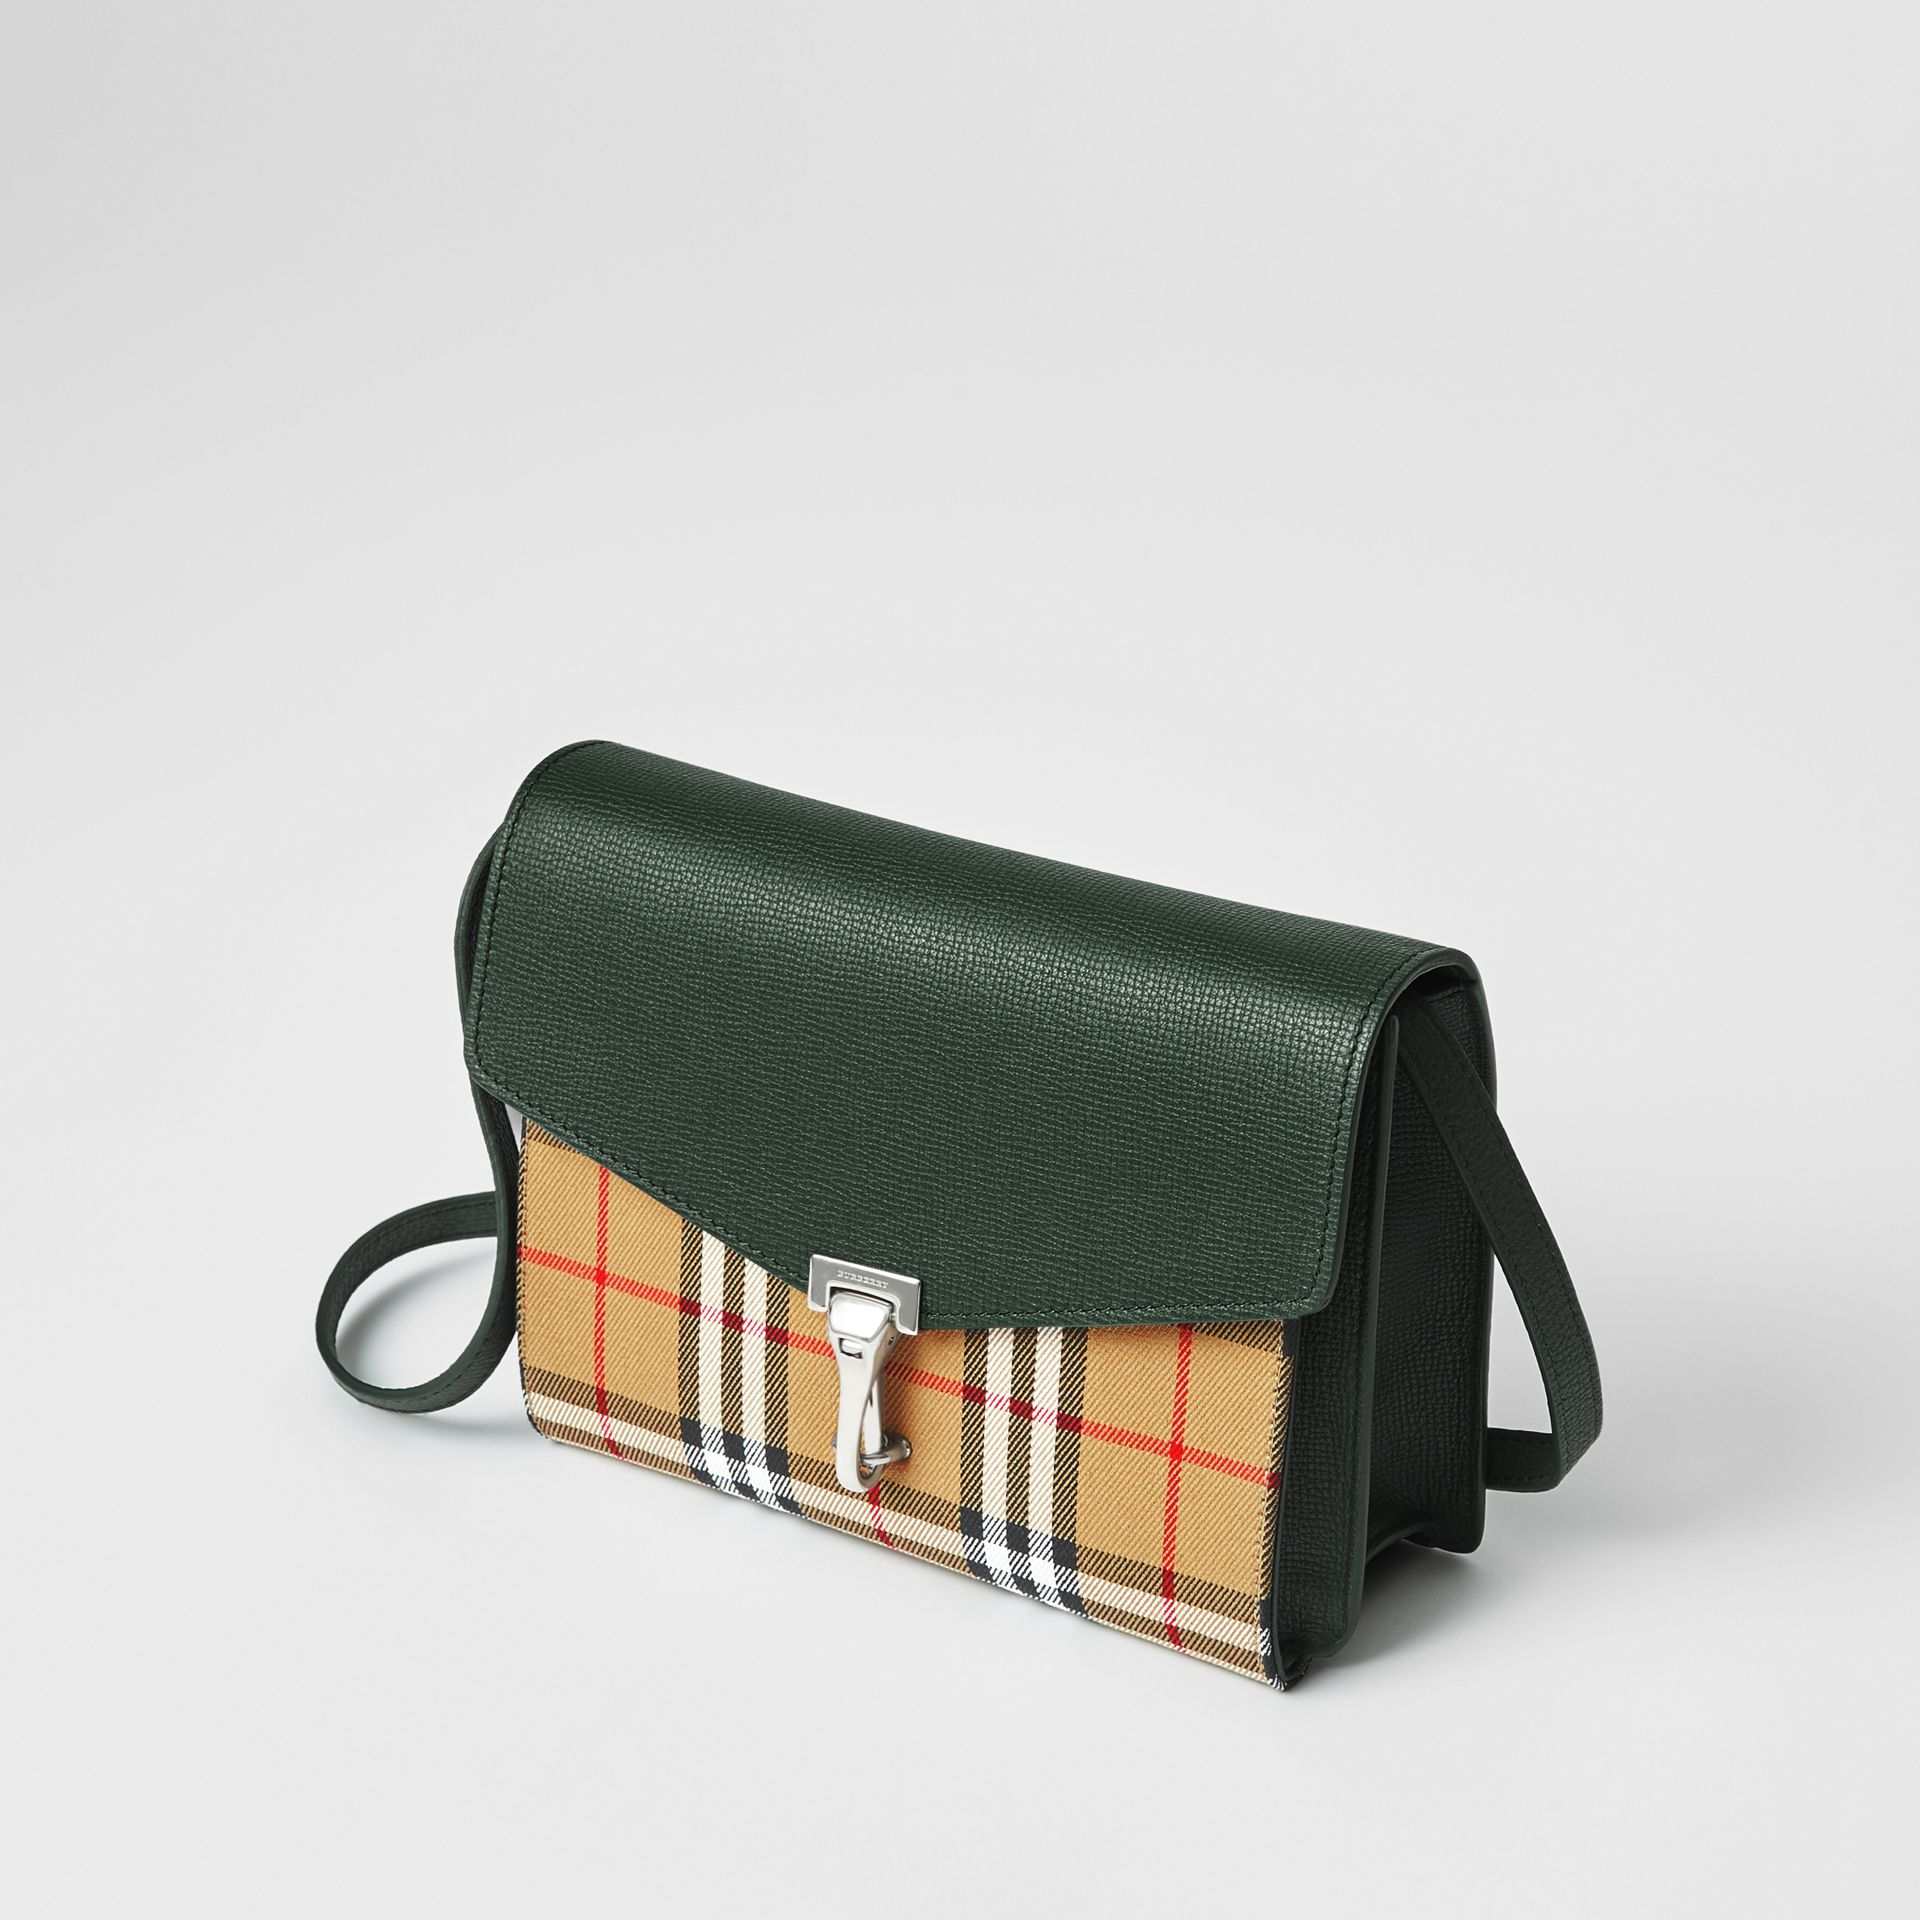 Small Vintage Check and Leather Crossbody Bag in Green - Women | Burberry Canada - gallery image 4